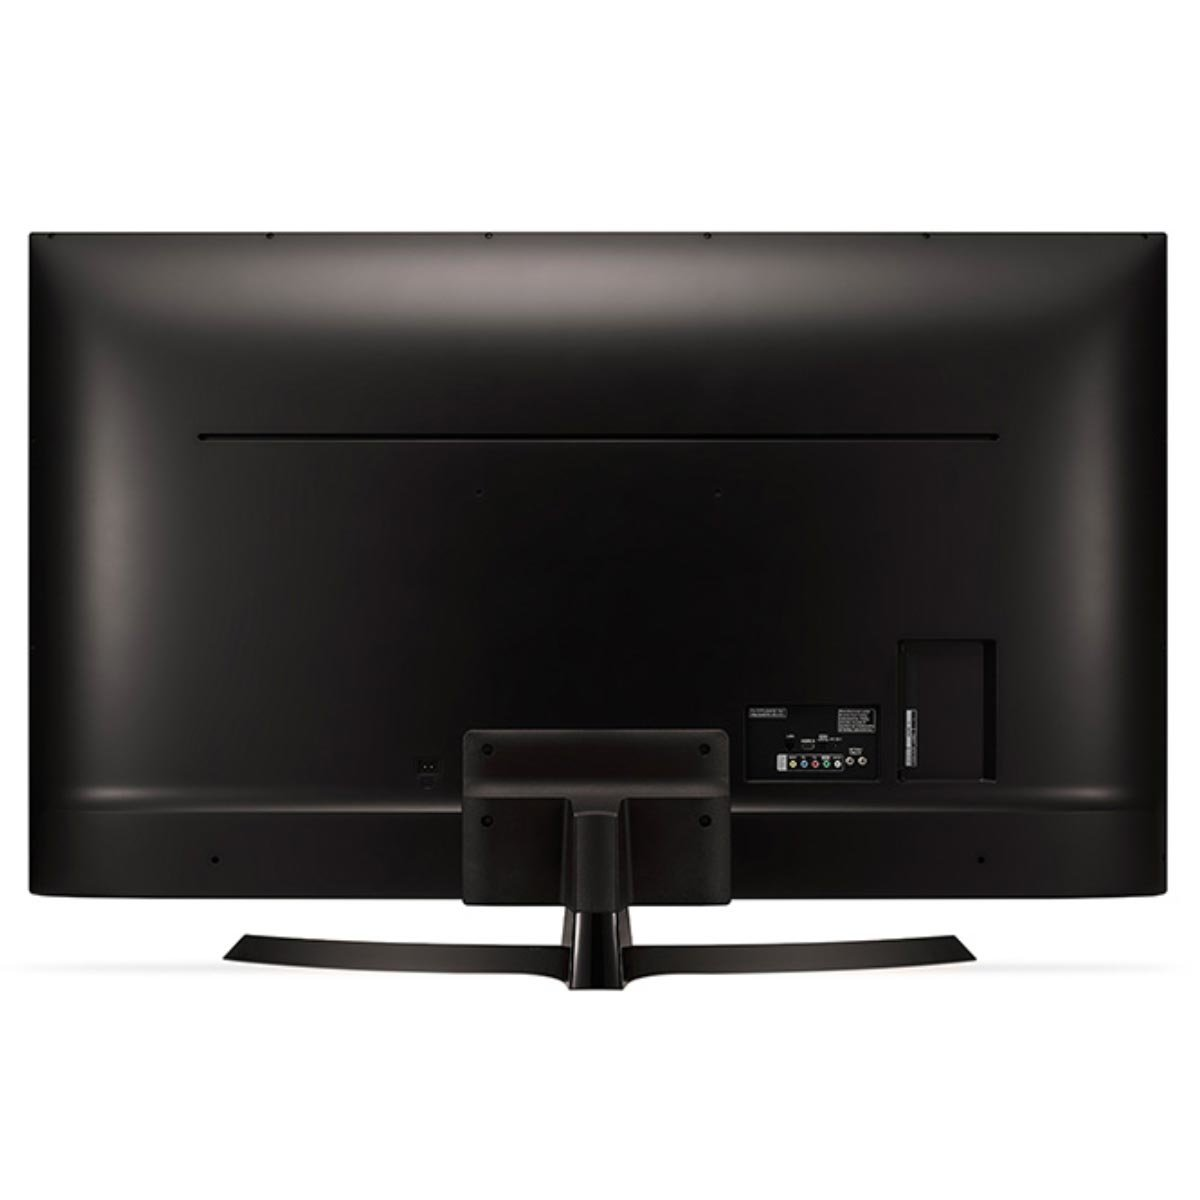 new lg 55uj634t 55 inch 139cm smart 4k uhd led lcd tv picclick au. Black Bedroom Furniture Sets. Home Design Ideas